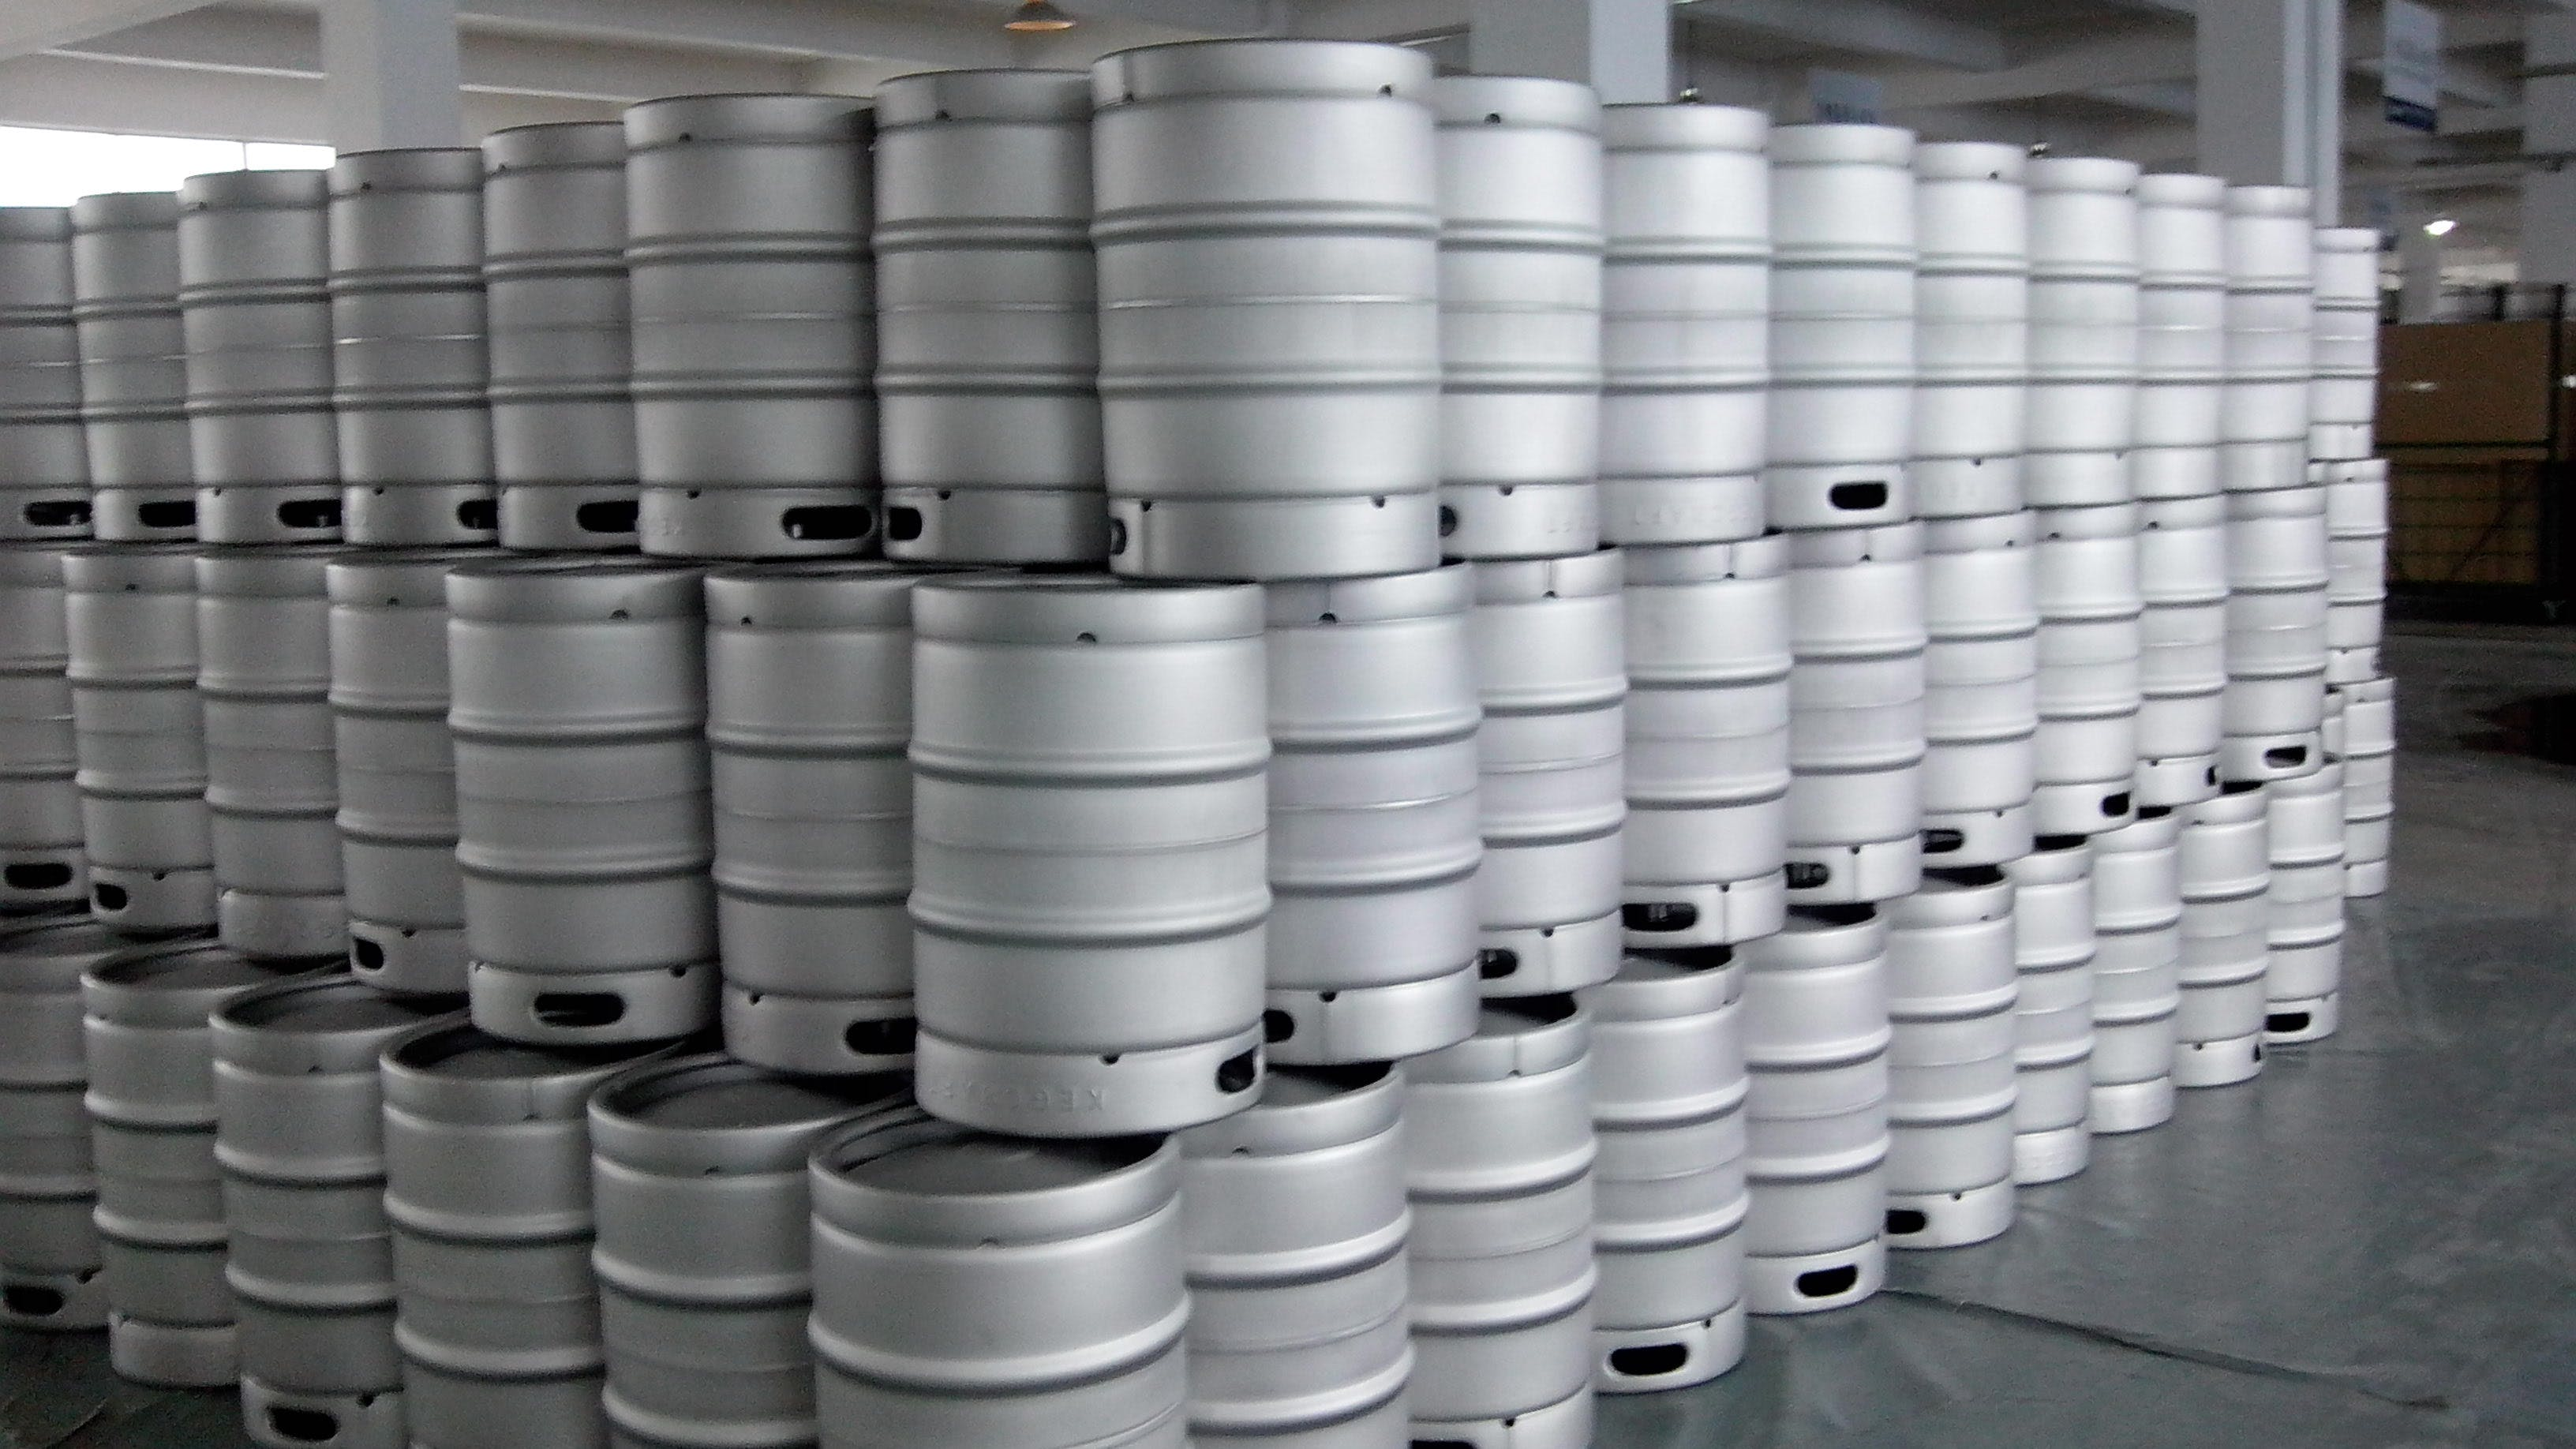 Kegs Keg sold by Standard Kegs LLC